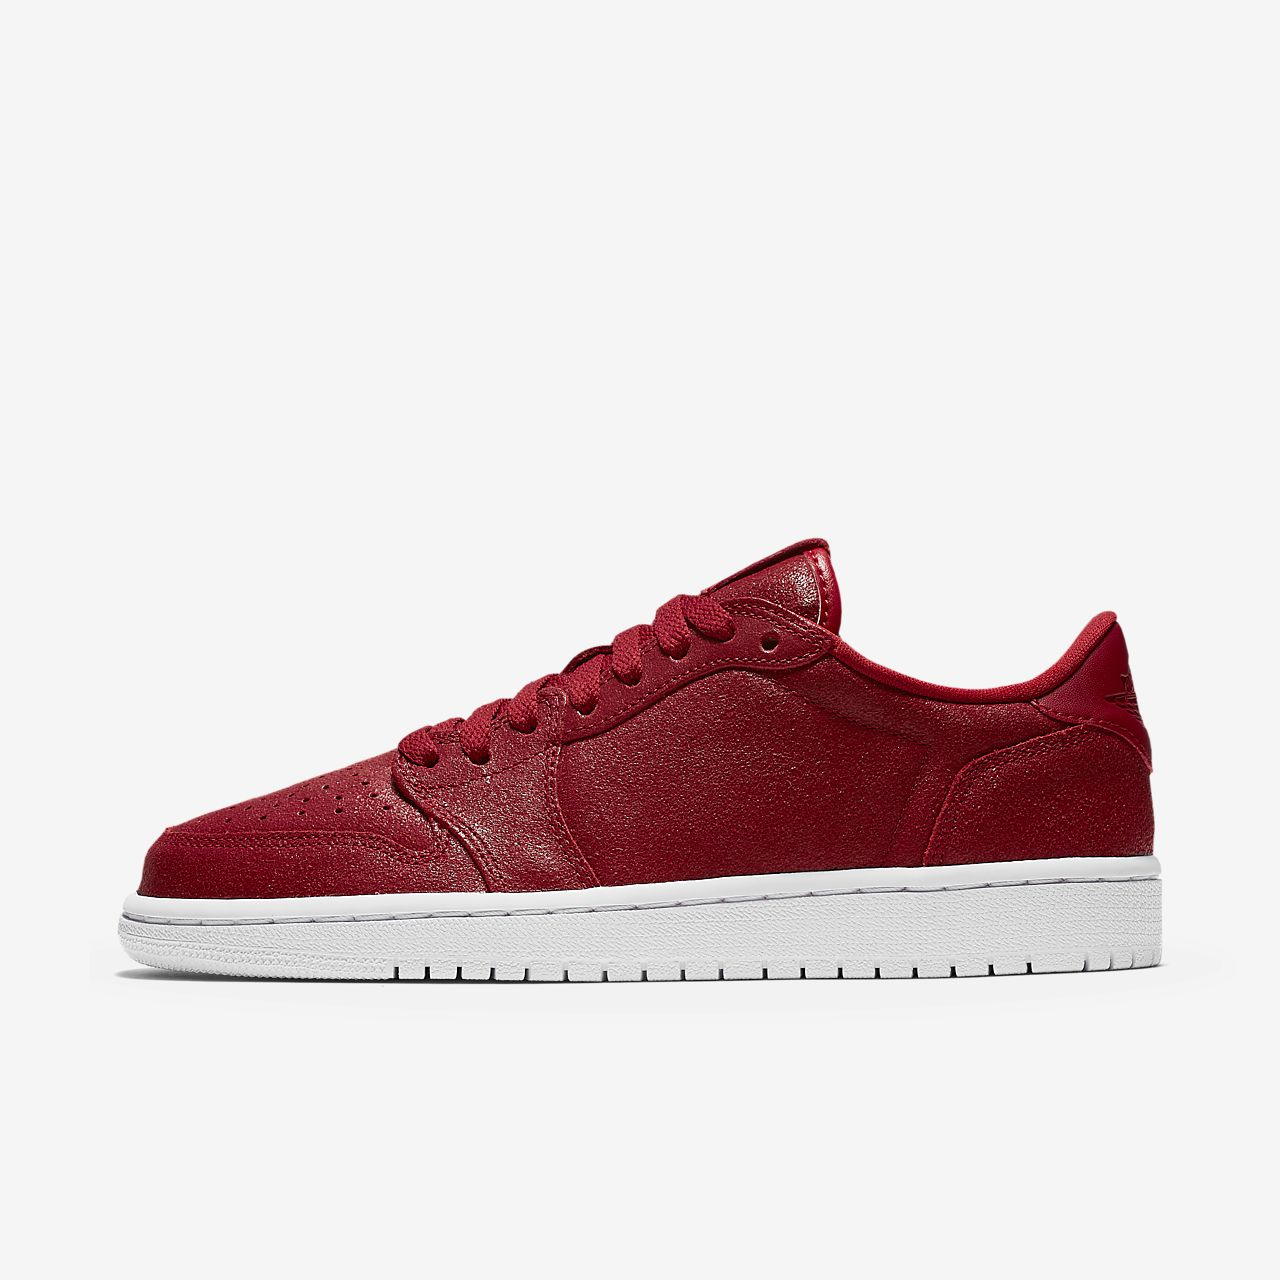 Air Jordan 1 Retro Low NS Women's Shoe